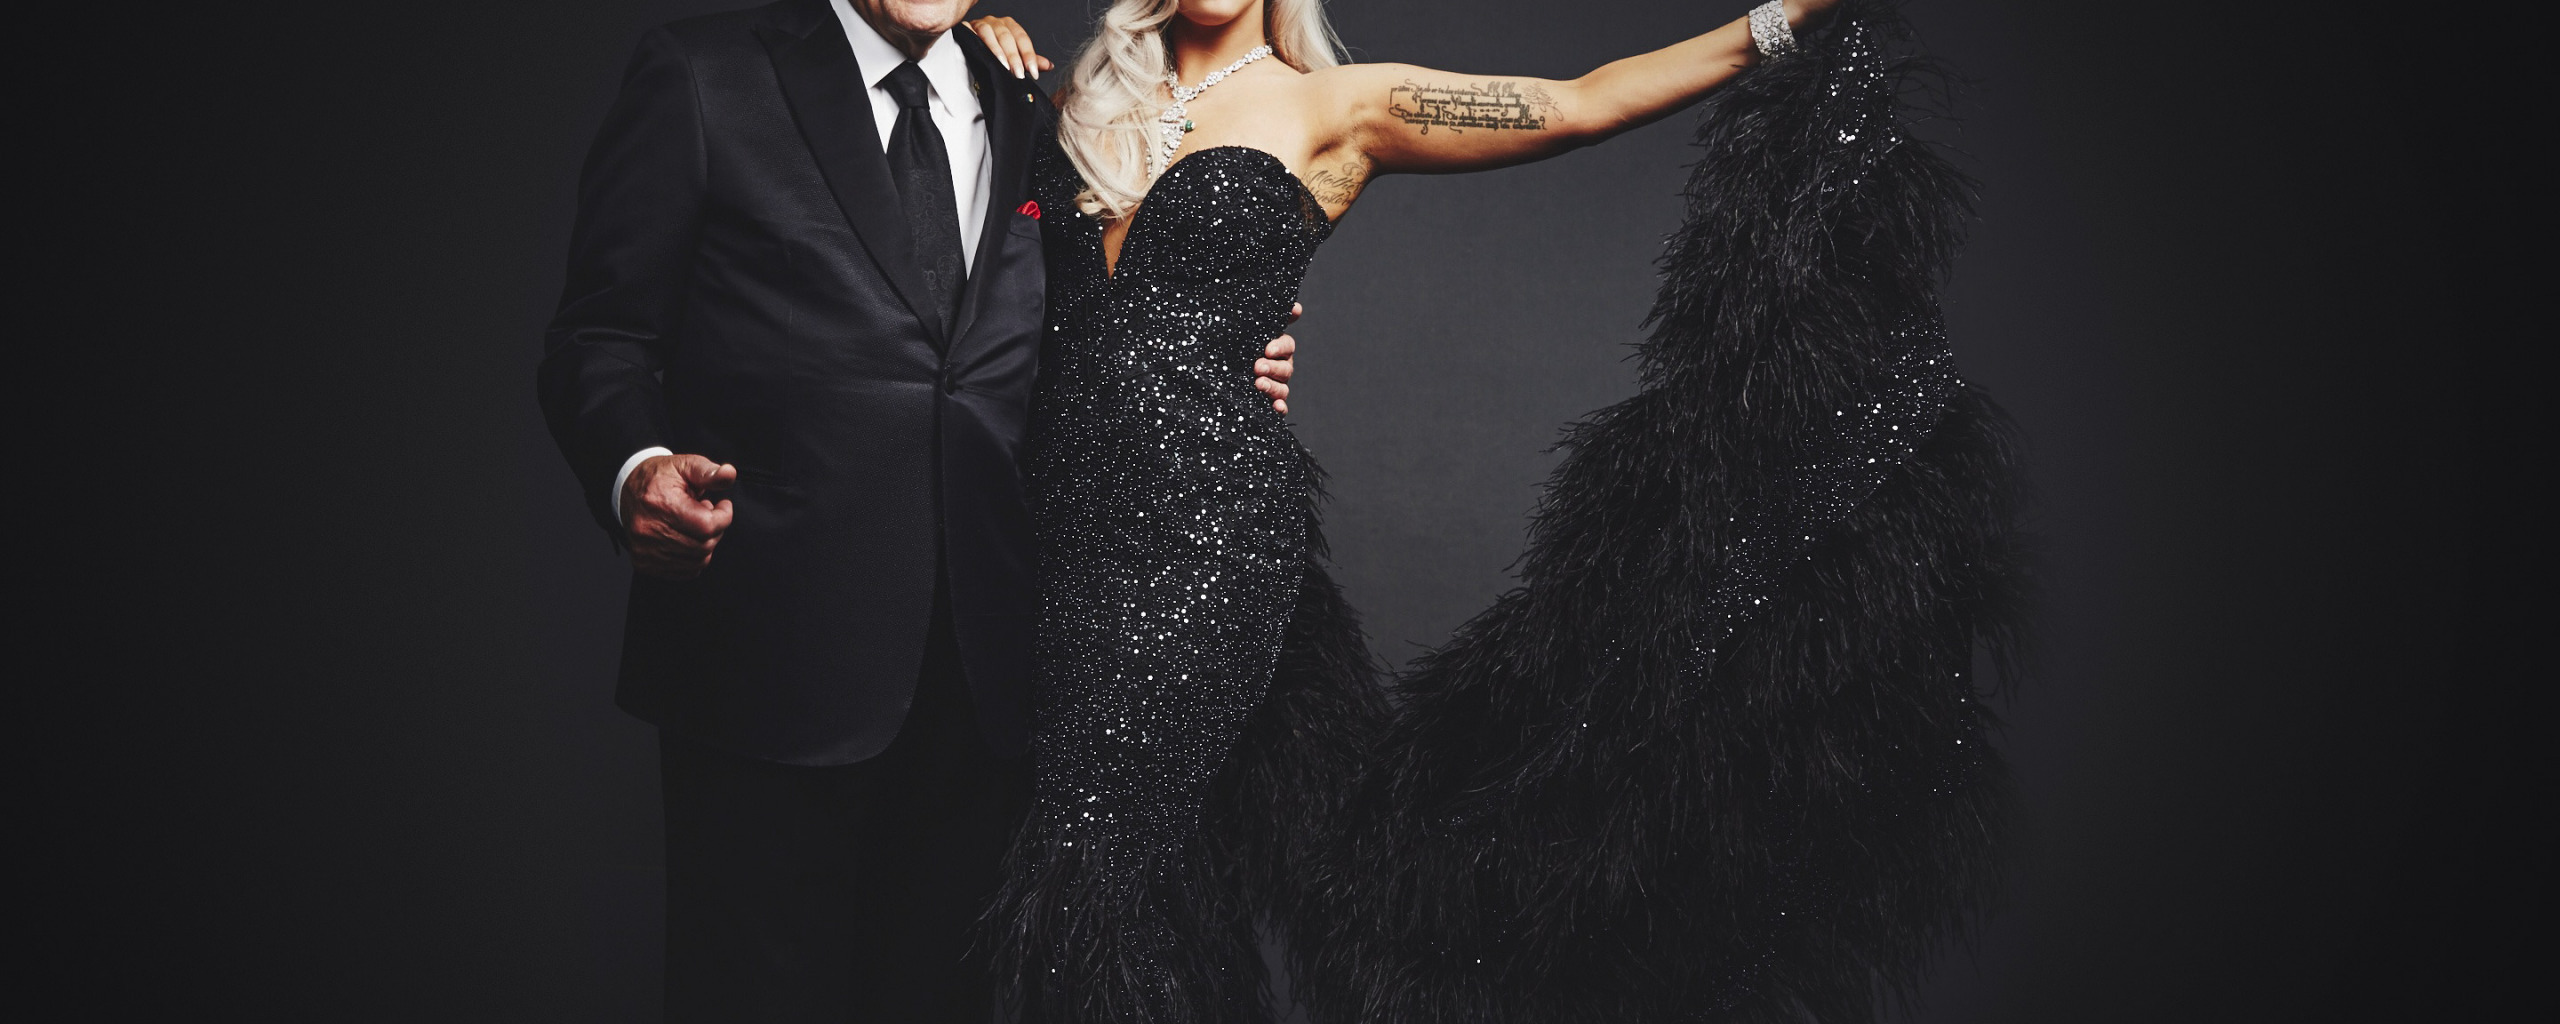 profile of a leader lady gaga Lady gaga had dreams of stardom on the silver screen long before she became a chart-topping pop starahead of the toronto film festival premiere of a star is born.